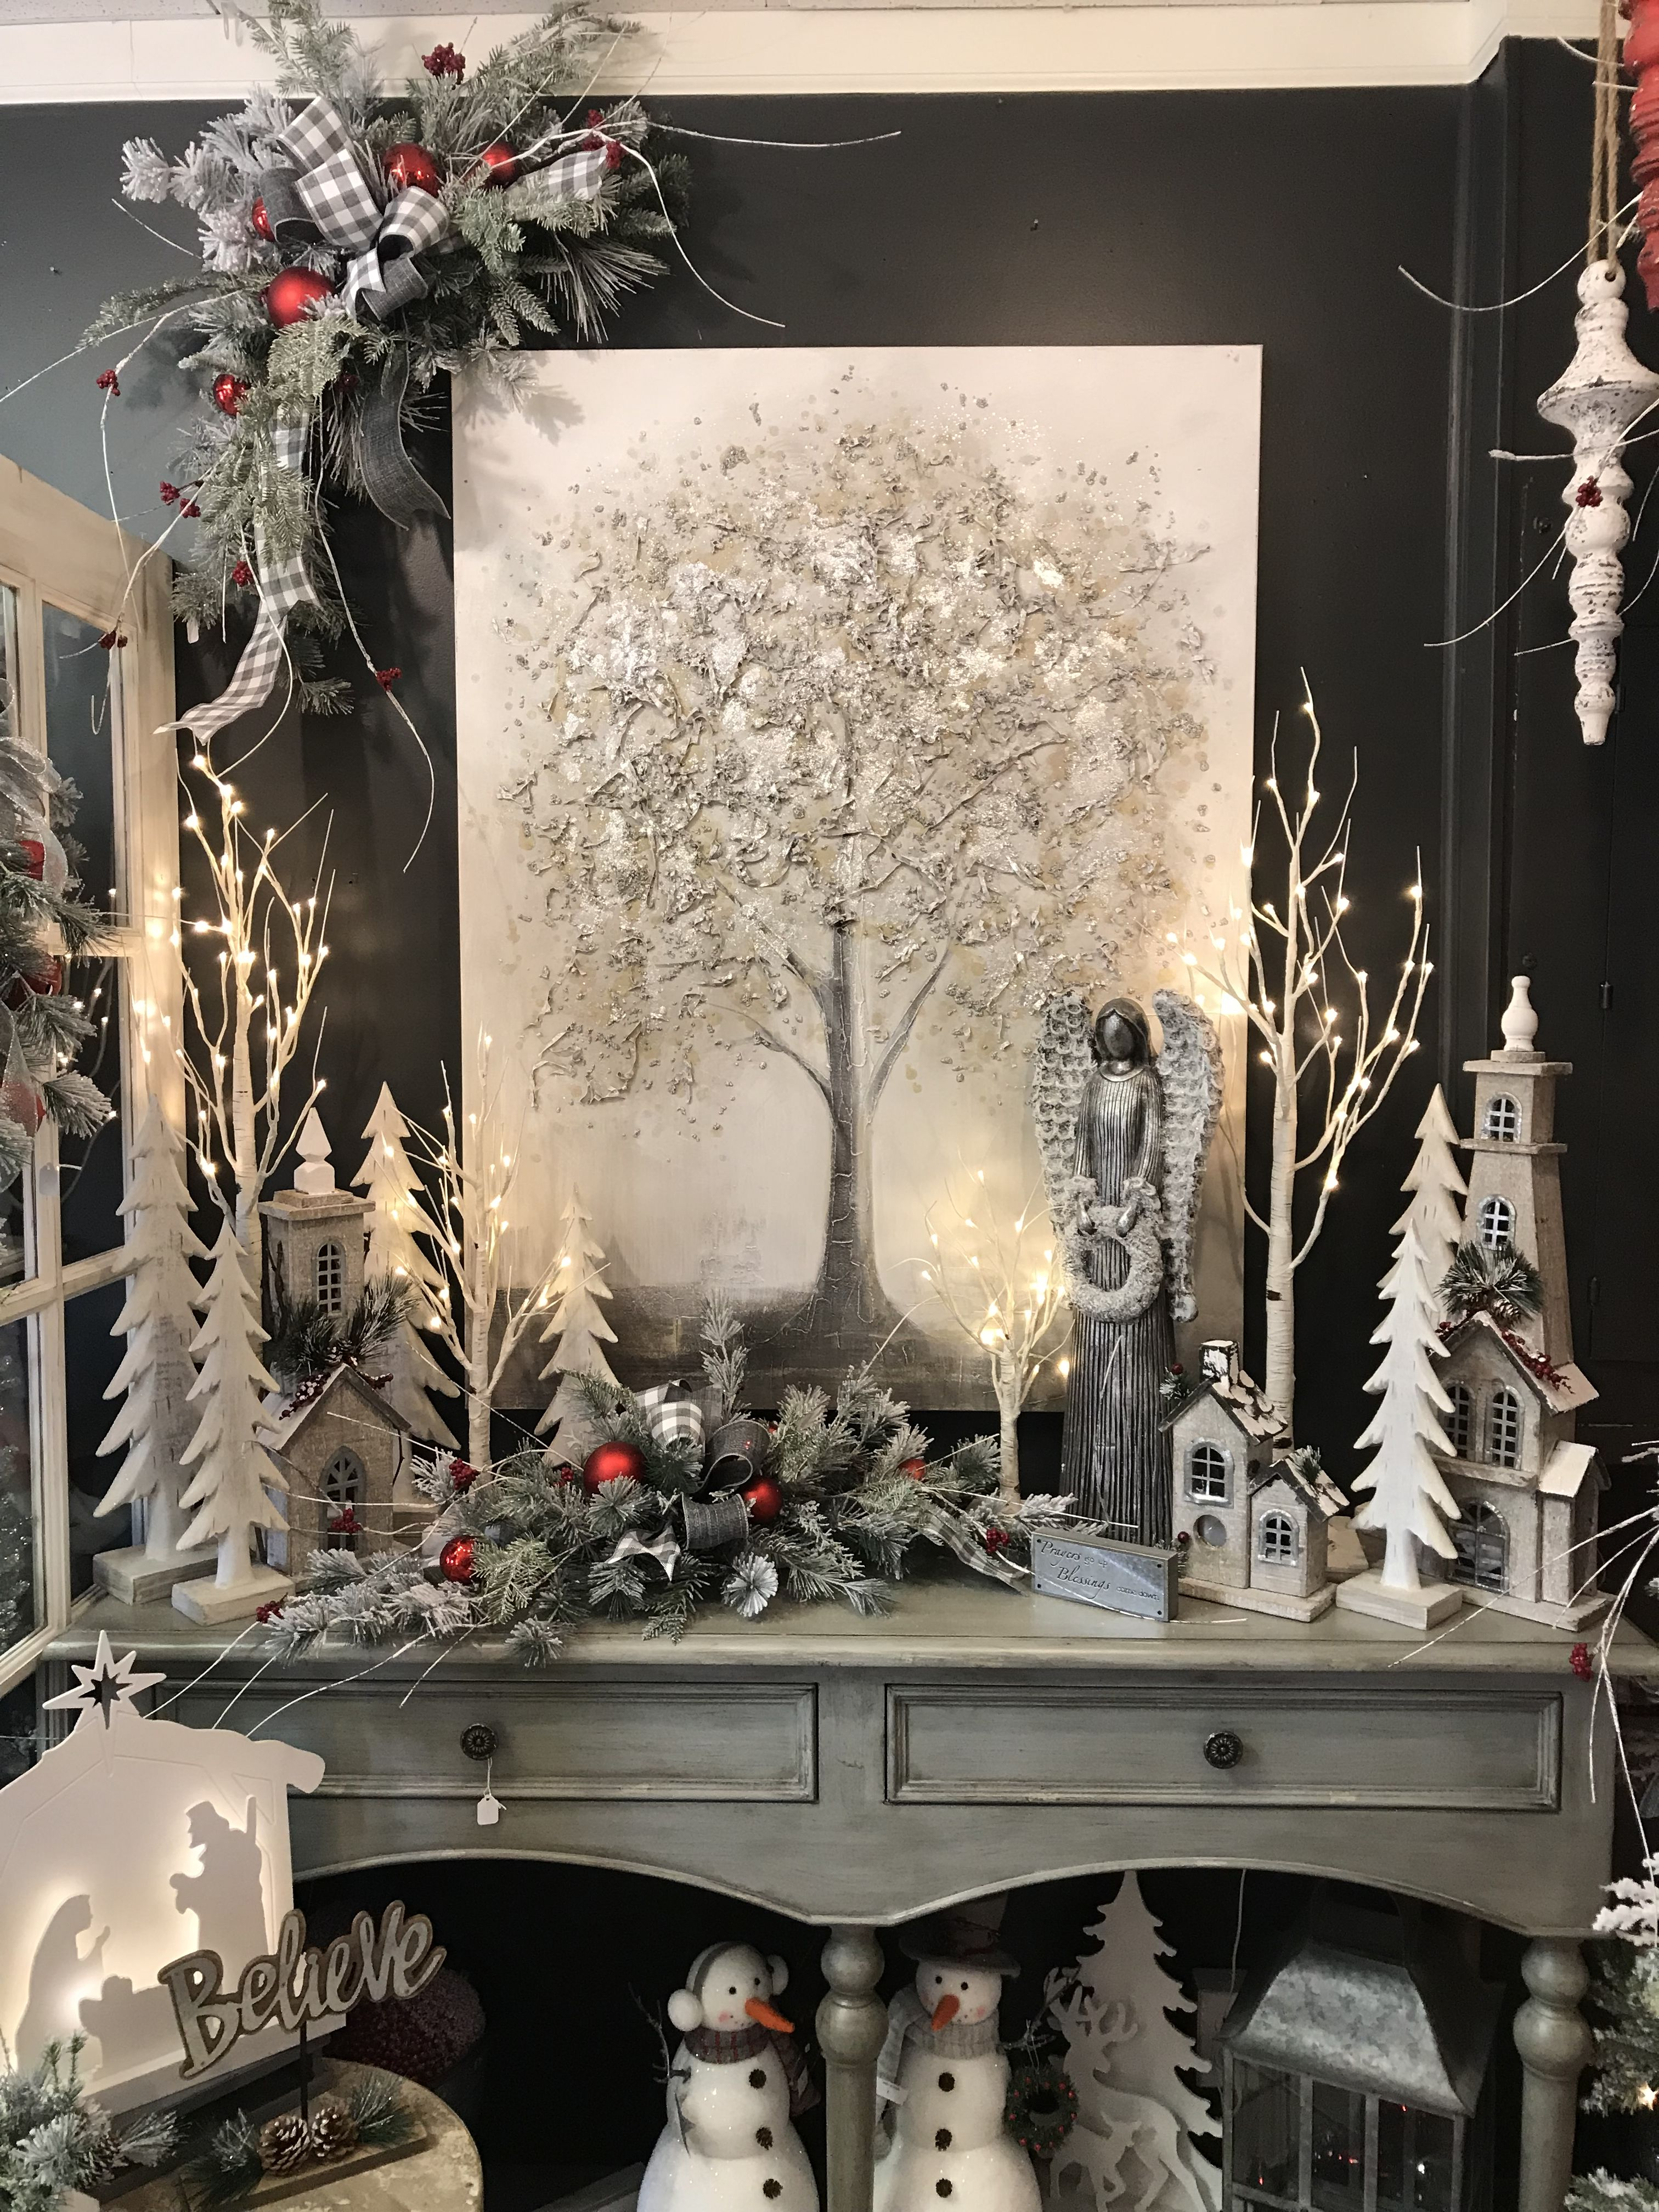 Window well decoration ideas  pin by claire pellizzari on christmas series  decor  pinterest